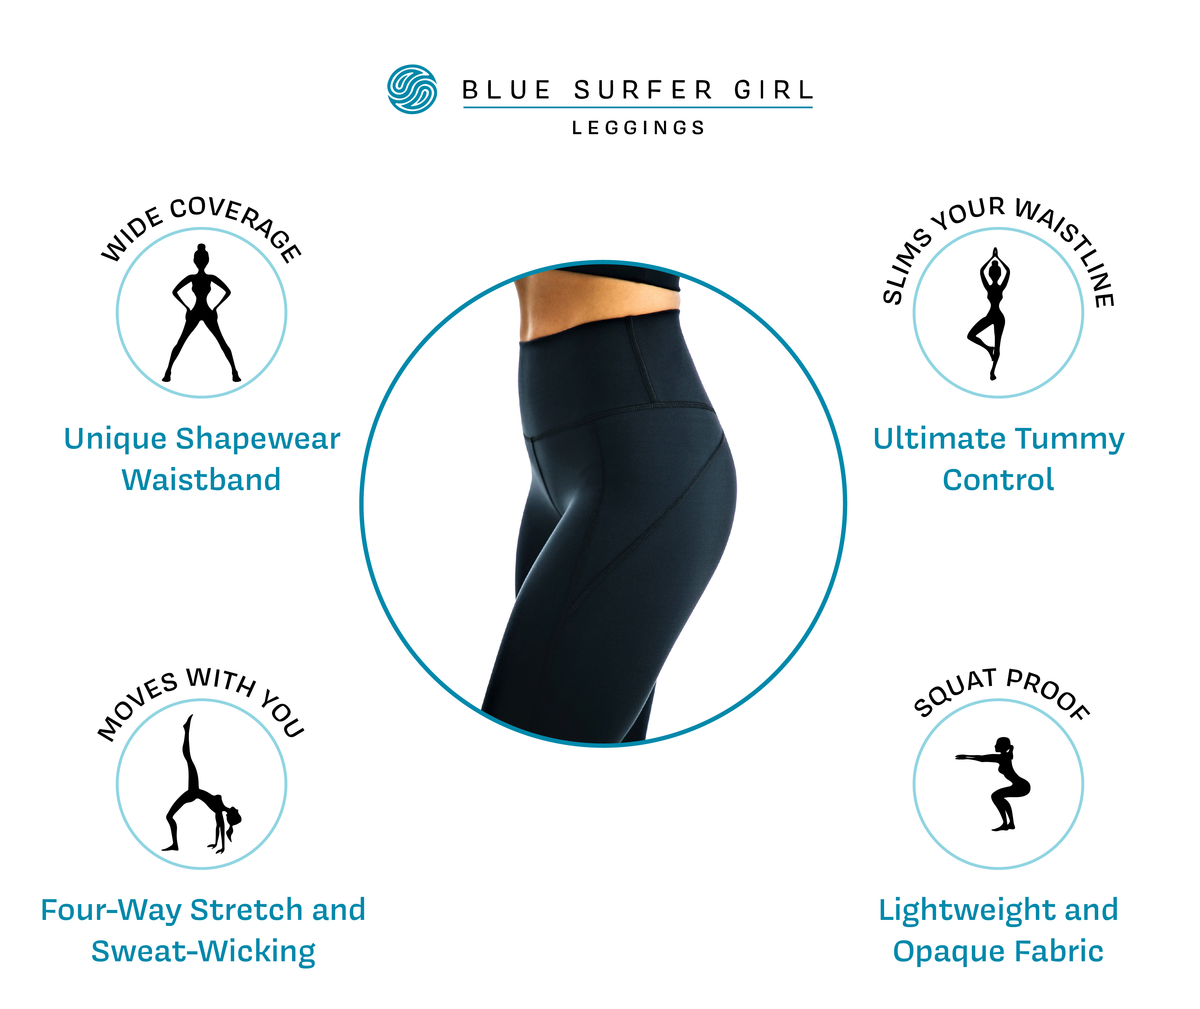 tummy control blue surfer girl leggings